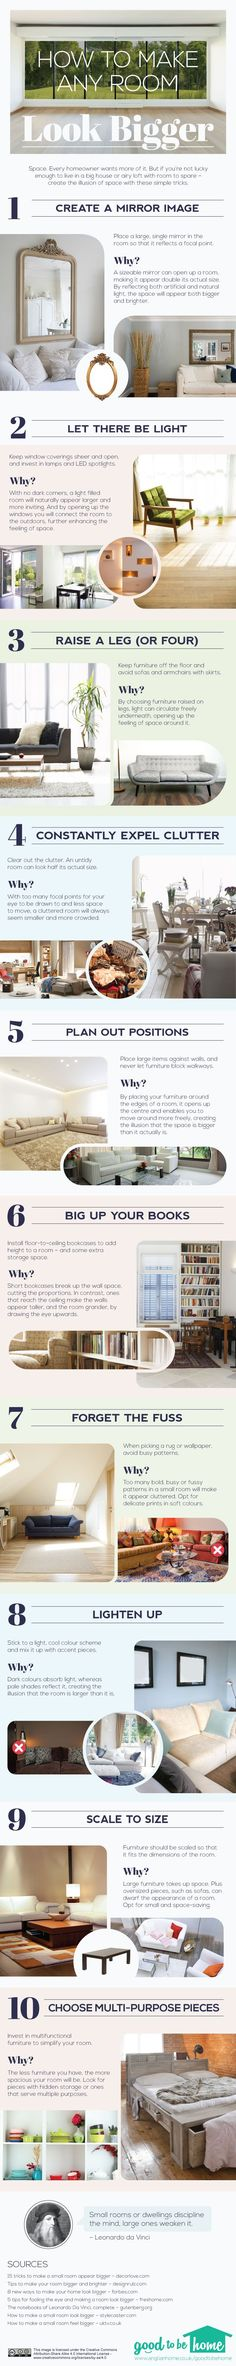 How to Make Any Room Look Bigger #infographic #HowTo #HomeImprovement